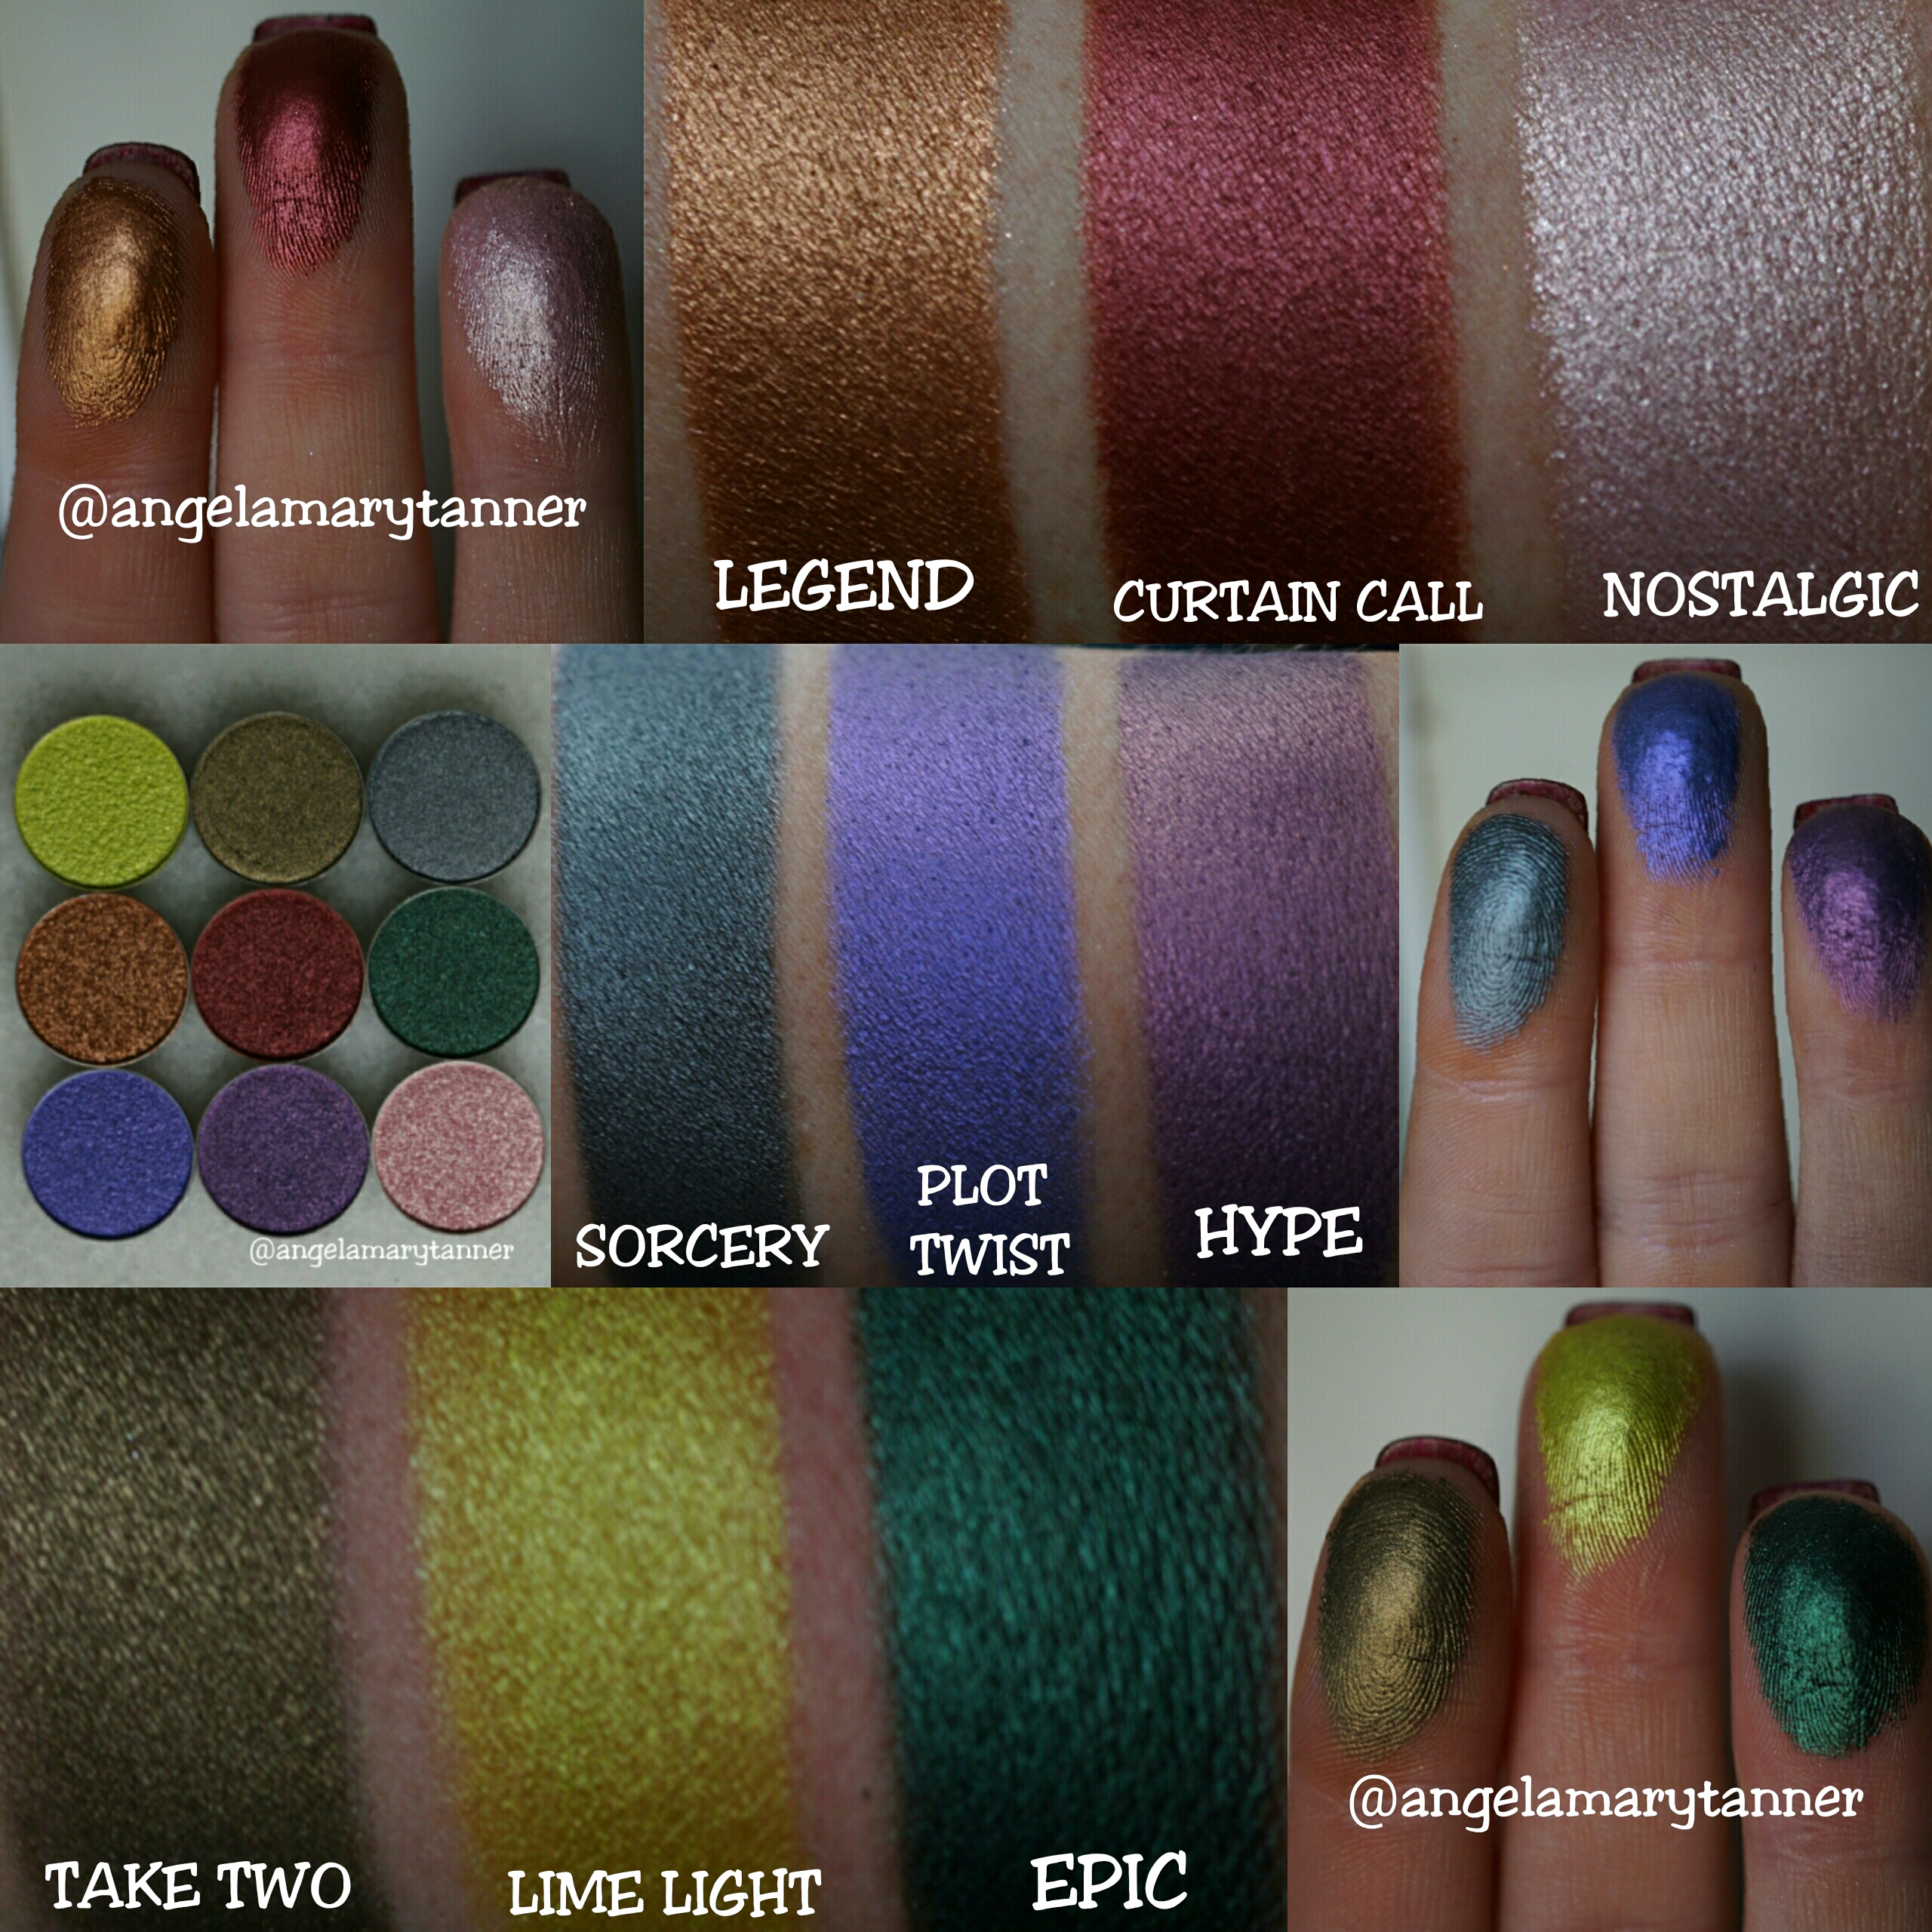 Extrêmement NEW MAKEUP GEEK FOILED EYESHADOWS: SWATCHES AND REVIEW KL92